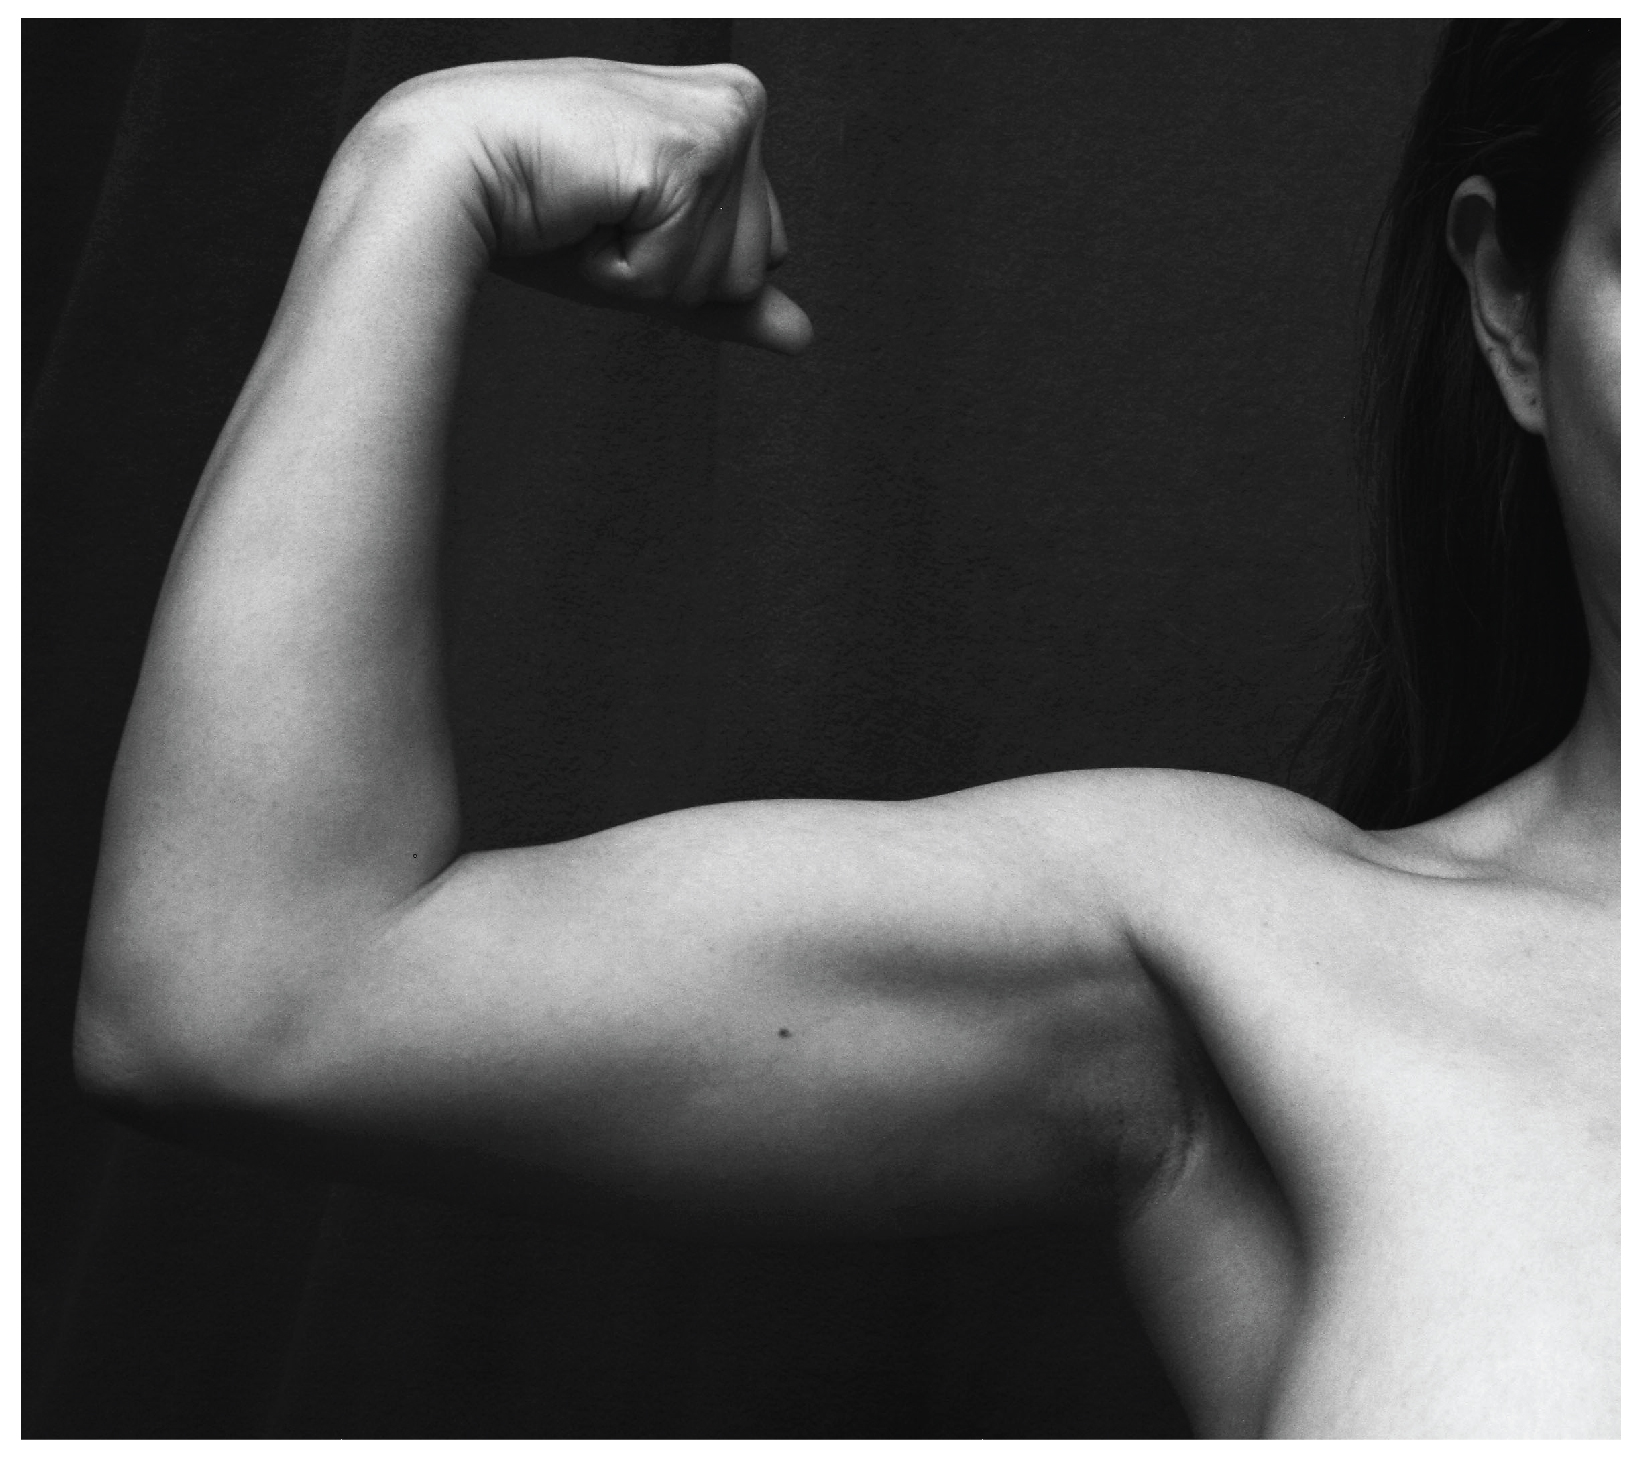 This photo shows a person flexing her biceps.